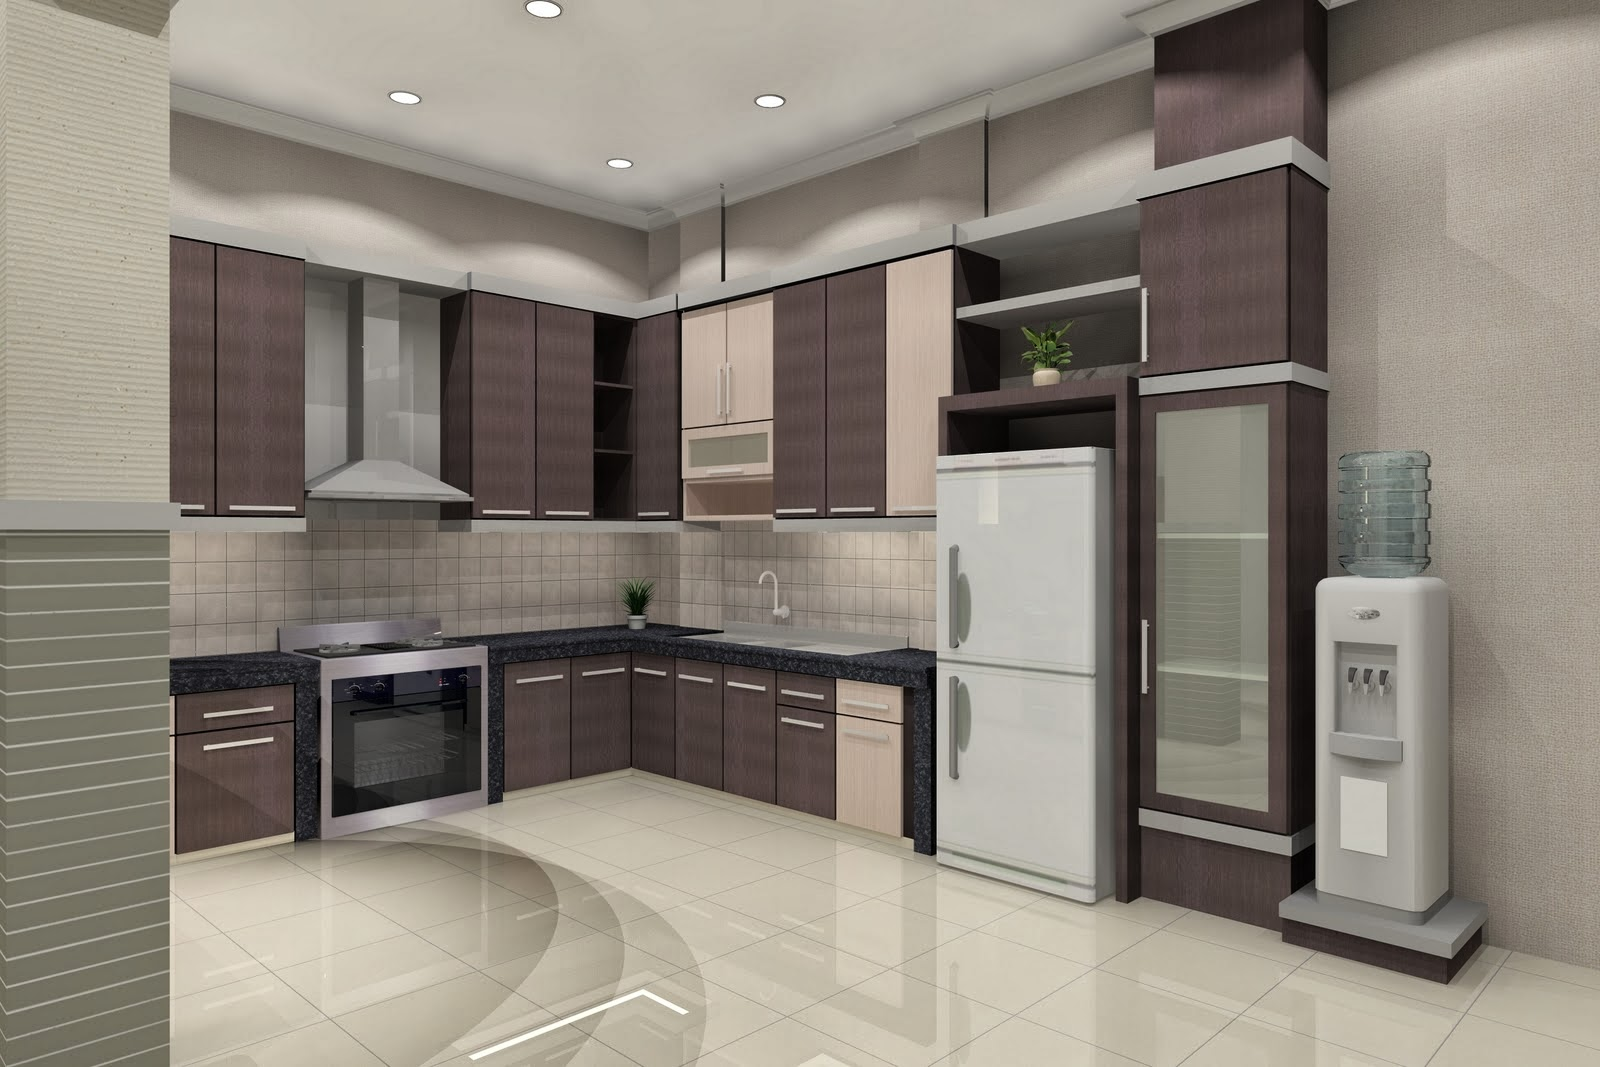 Modern Kitchen Ideas 2014 Endearing Modern Kitchen Design For Minimalist House 2014  Home Design Idea Inspiration Design